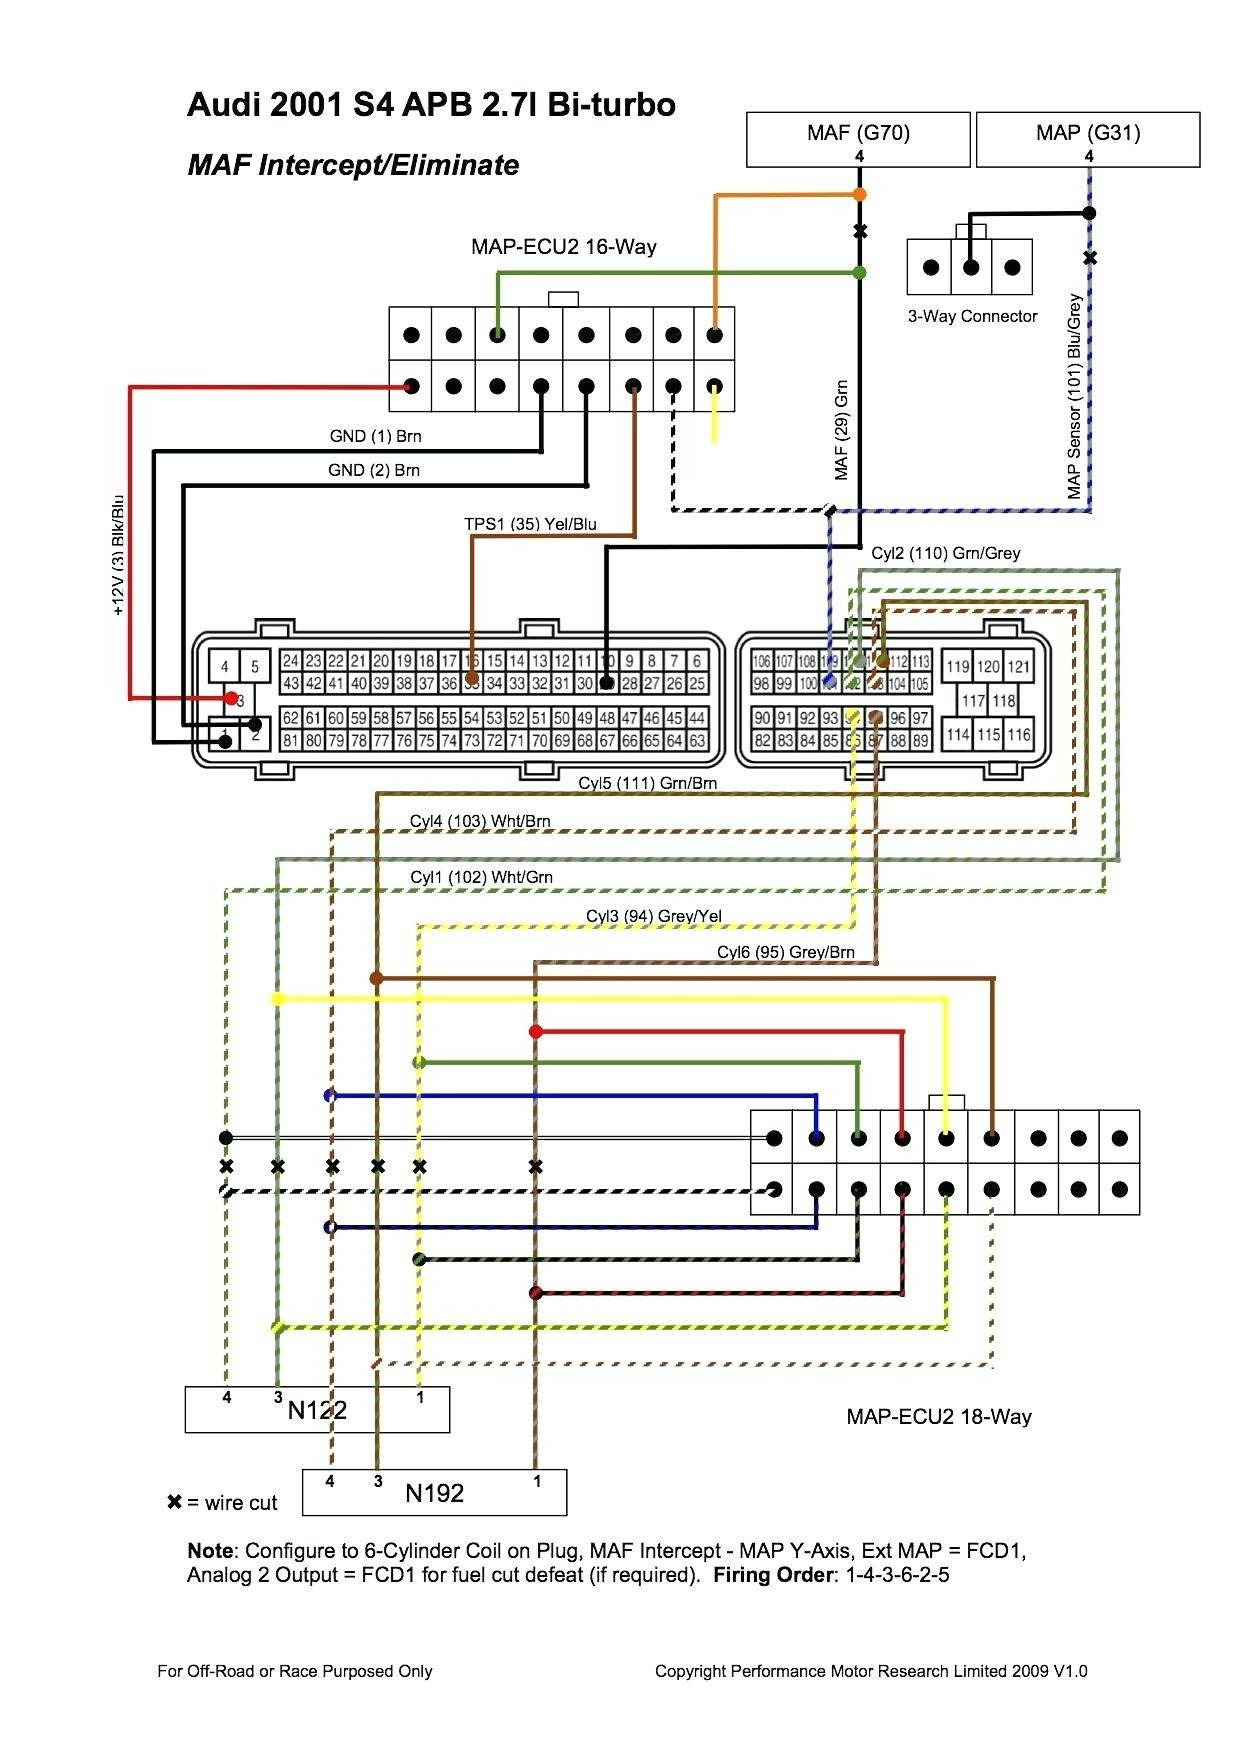 Wiring Diagram Of Mitsubishi Lancer Auto Electrical Wiring Diagram